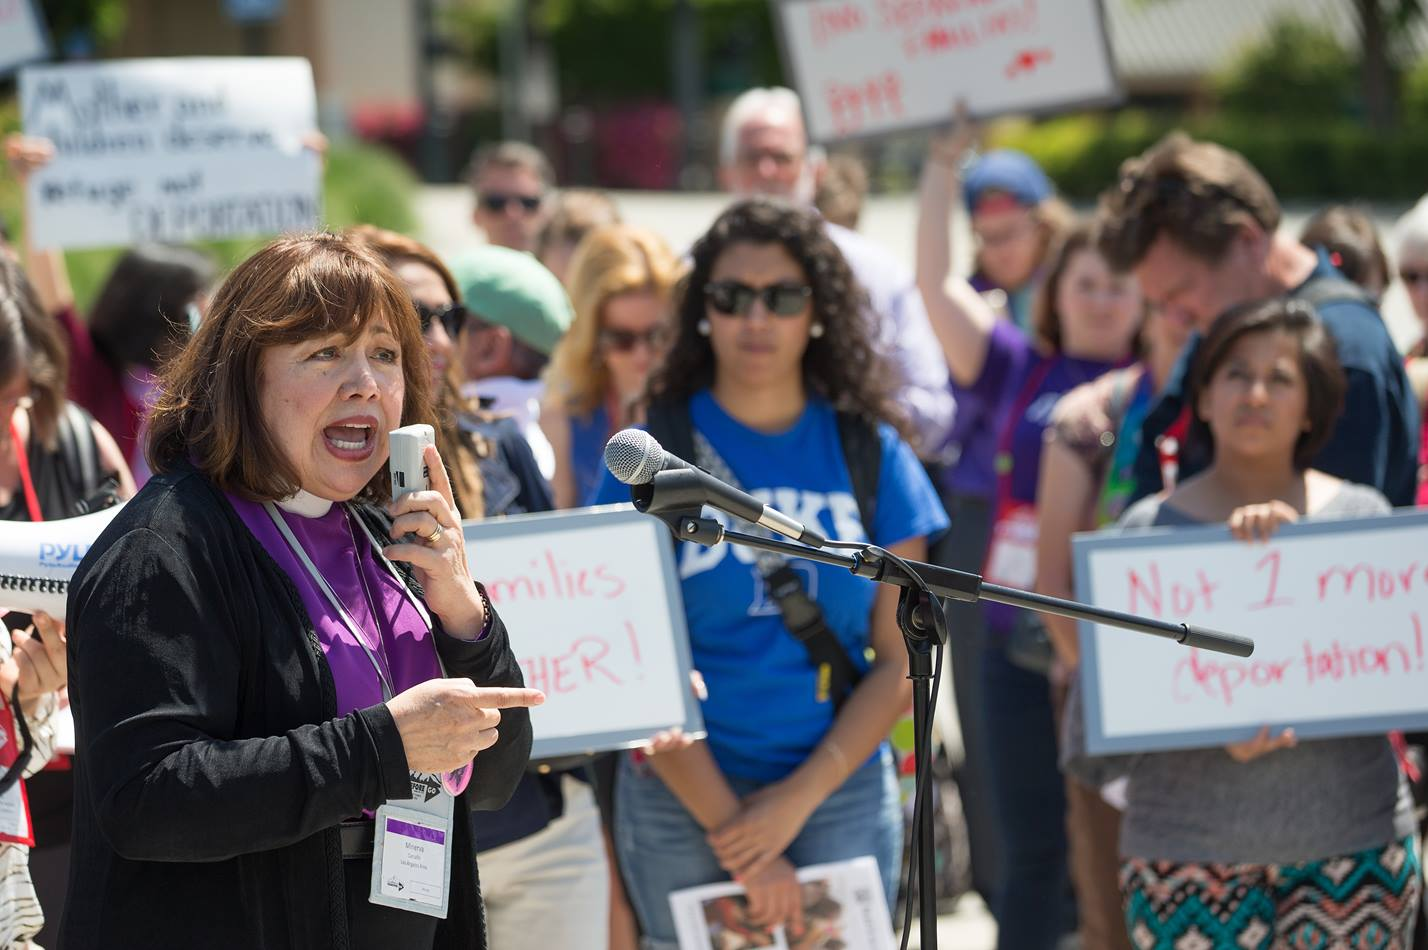 Bishop Minerva Carcaño addresses a rally of Methodists in support of immigration reform rally at the Convention Center Plaza outside the 2016 United Methodist General Conference in Portland, Ore.